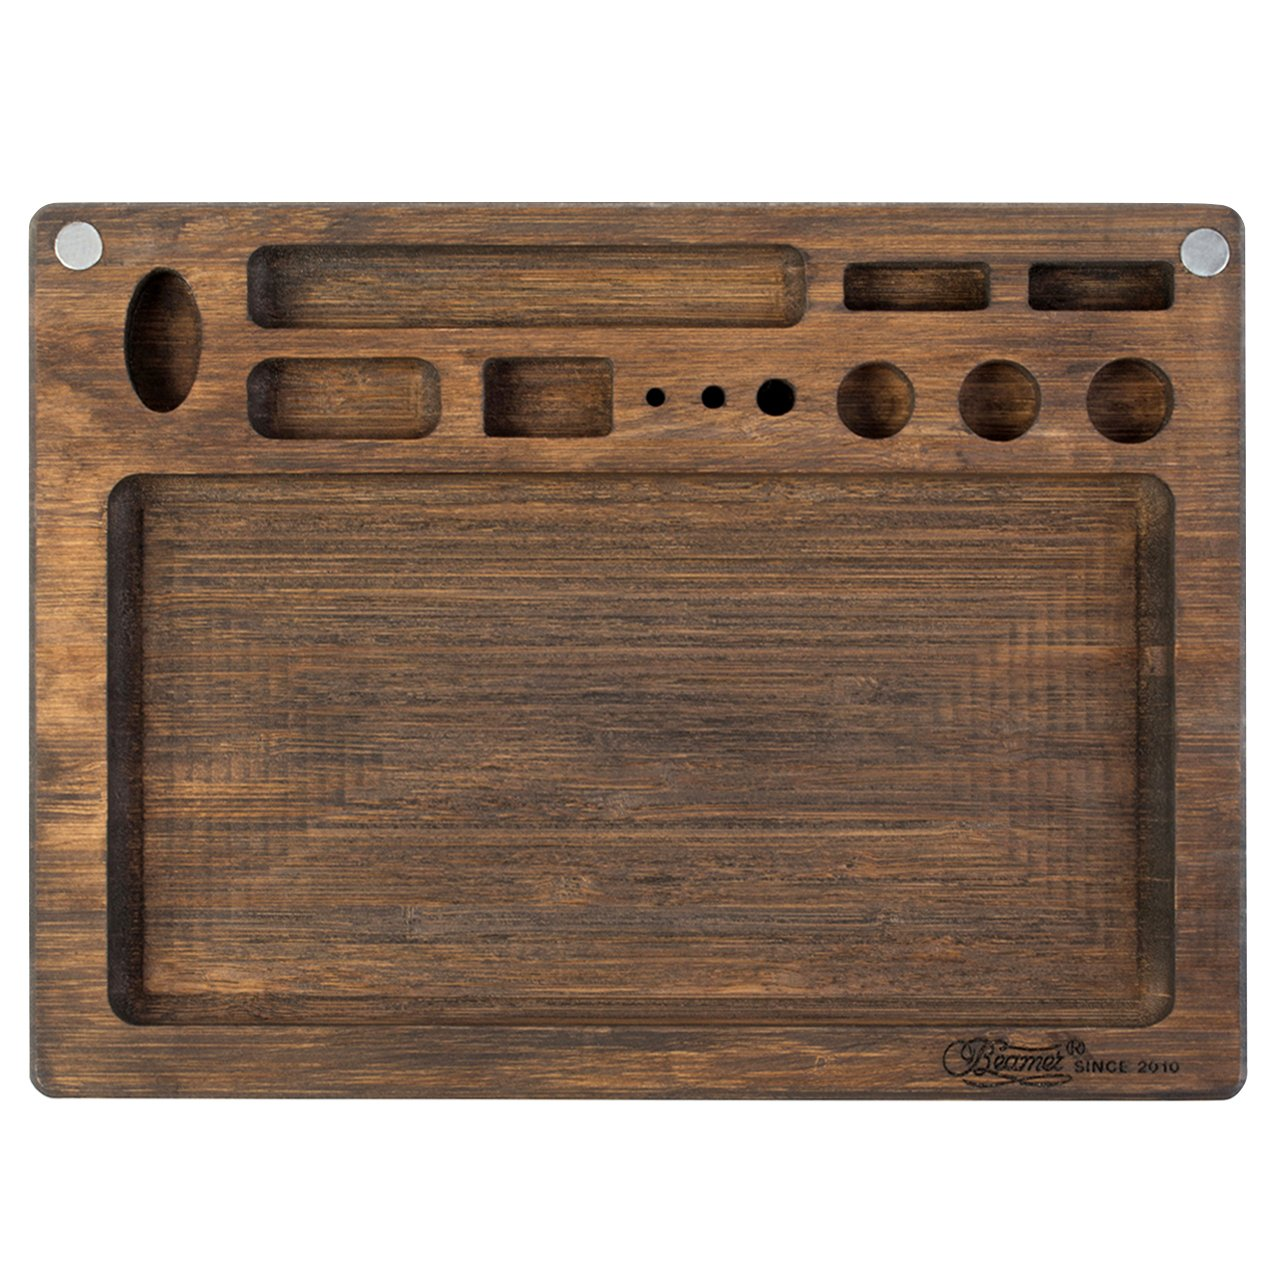 Beamer Val All-Natural Bamboo Rolling Tray - Dark Finish - 10 X 7 inch